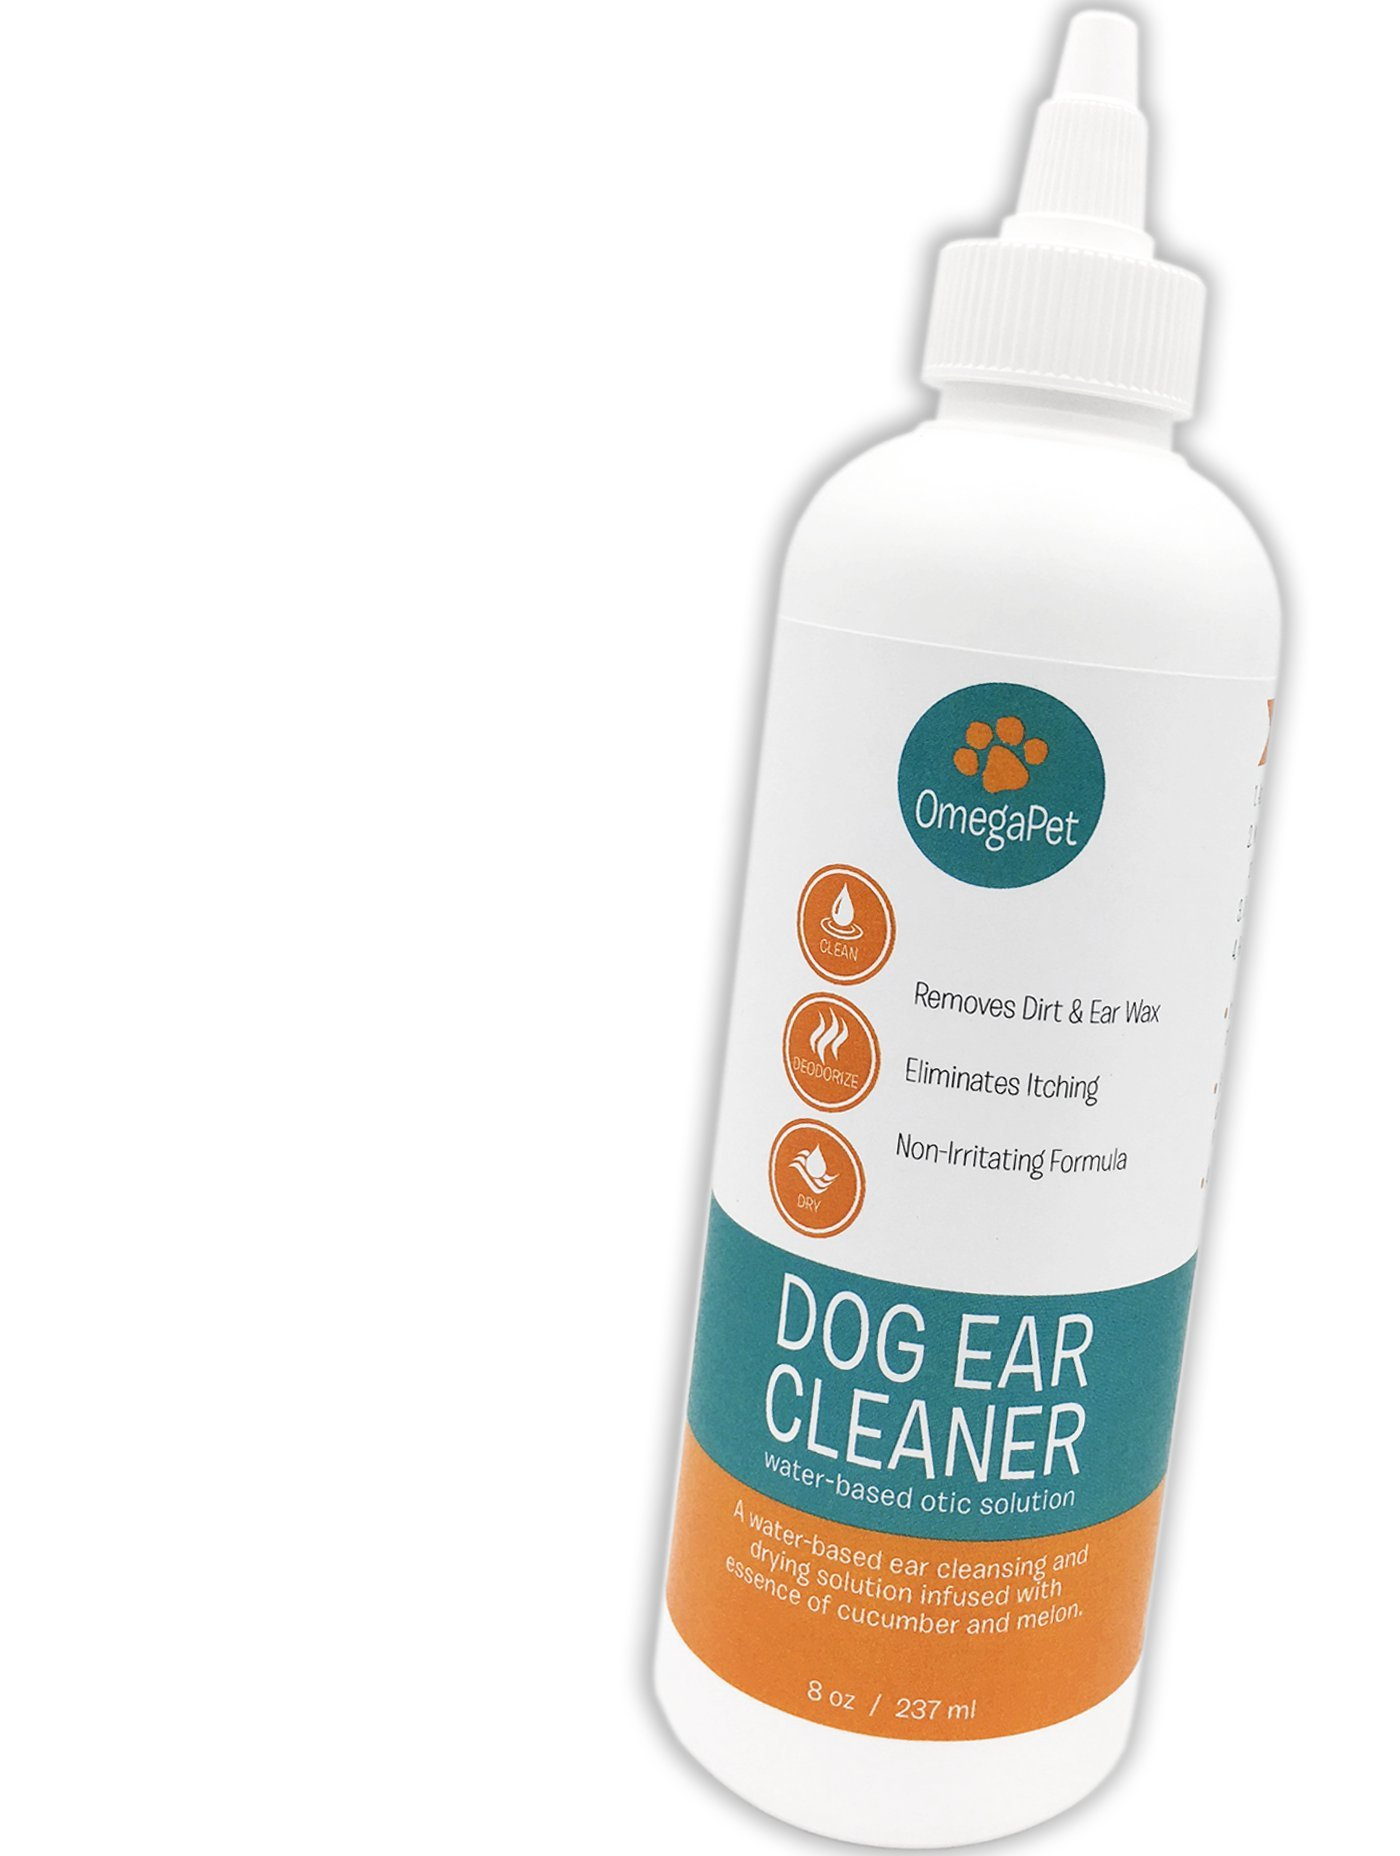 Dog Ear Cleaner for Infection Ear Cleaner for Dogs and Cats to Treat Itch Sti